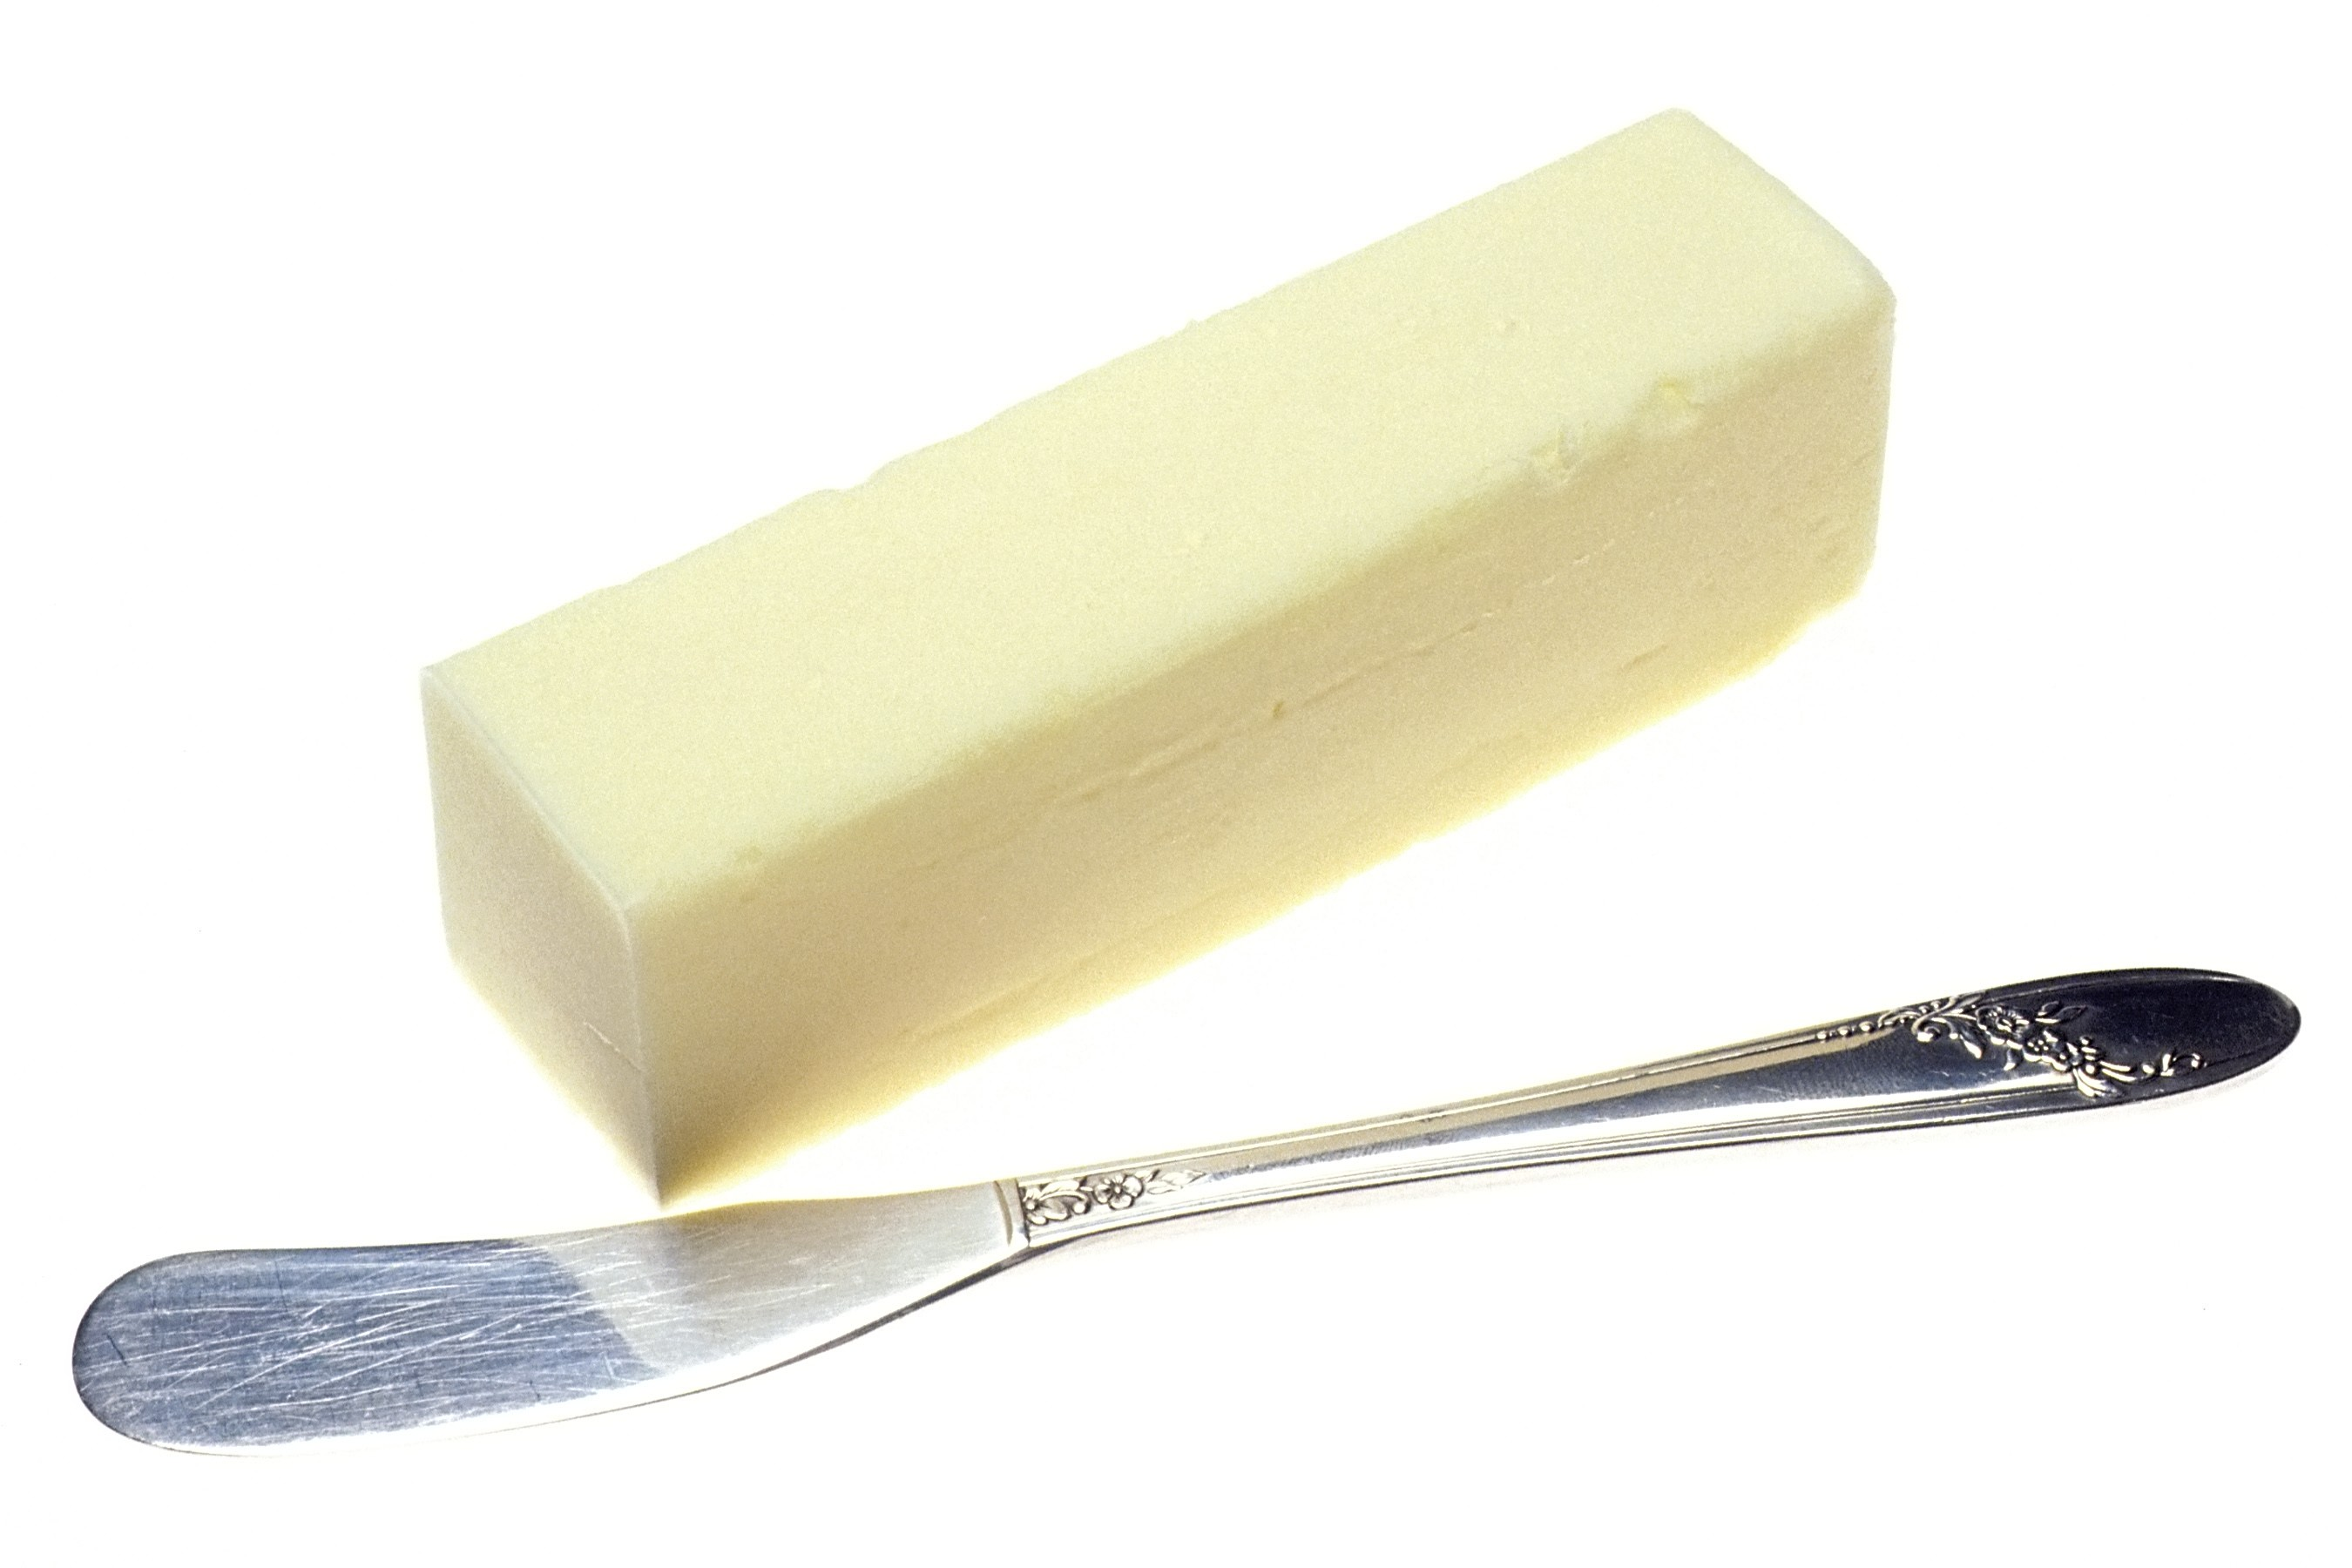 File:NCI butter.jpg - Wikipedia